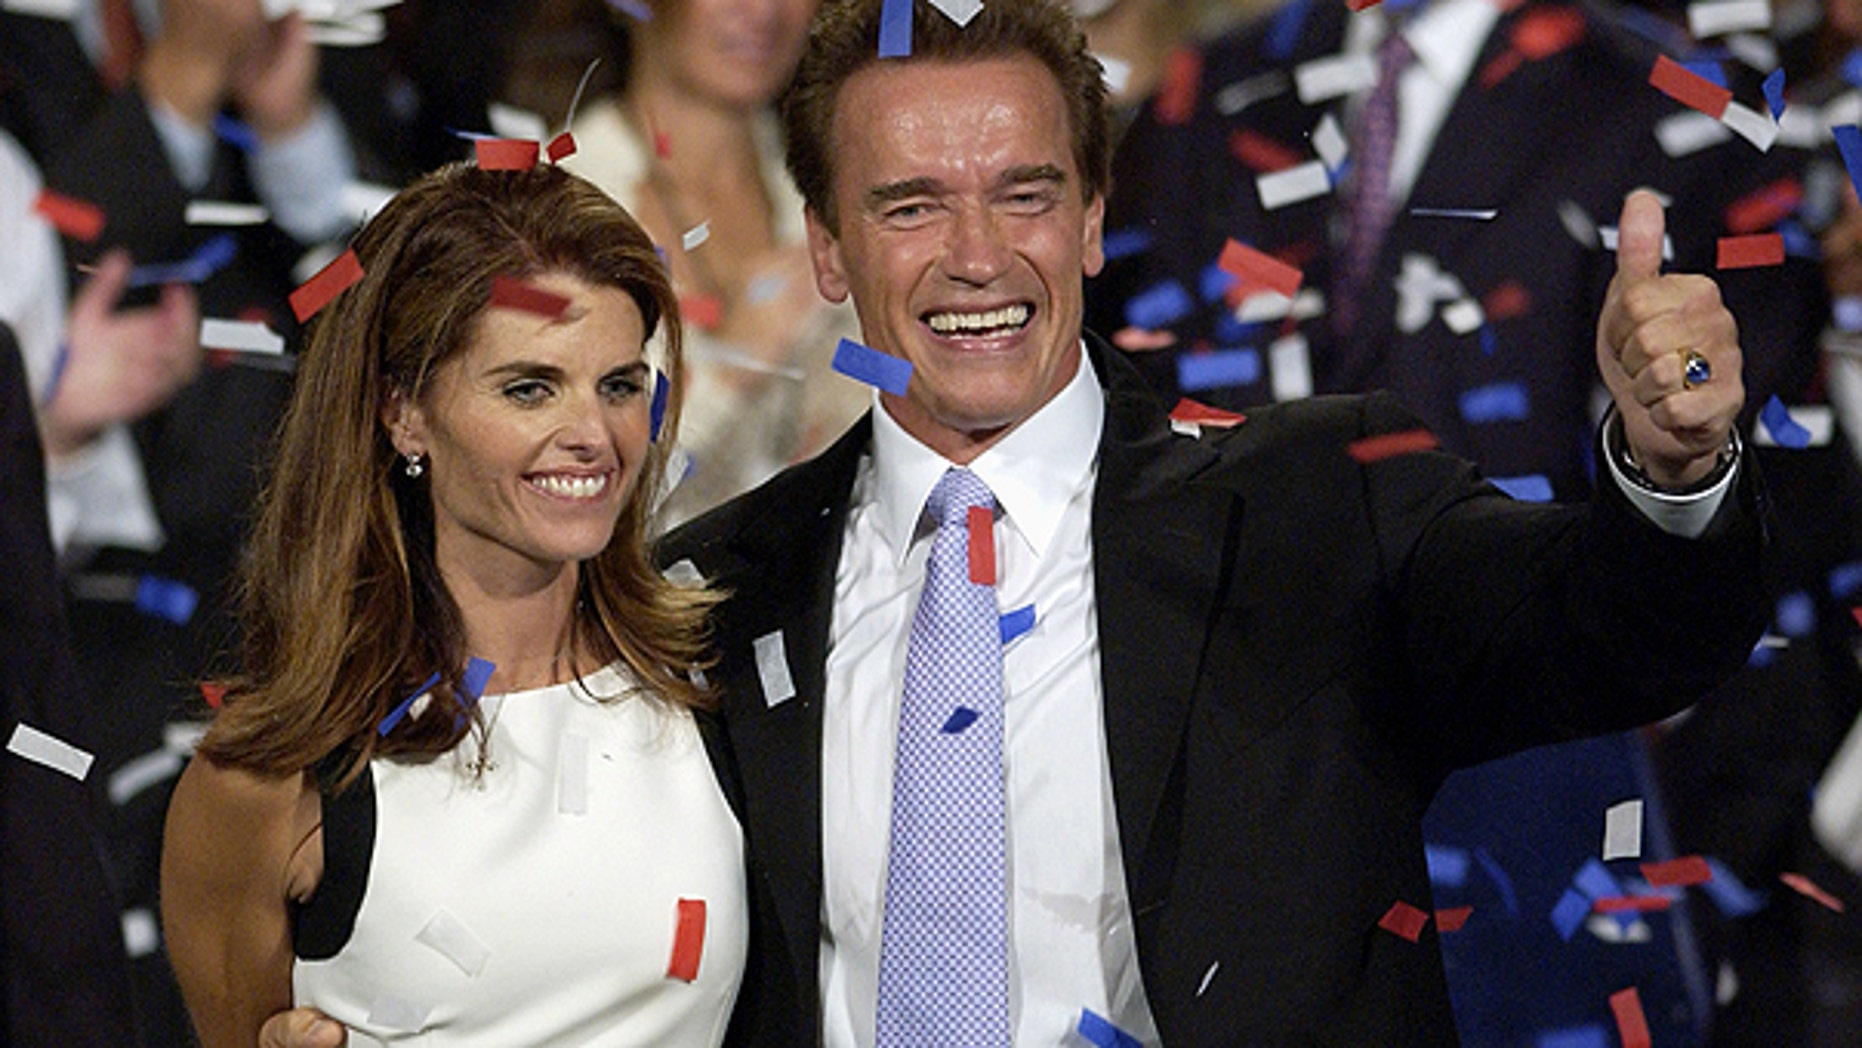 In this file photo taken Oct. 7, 2003, shows Arnold Schwarzenegger and his wife, Maria Shriver ,as they celebrate his victory in the California gubernatorial recall election in Los Angeles.